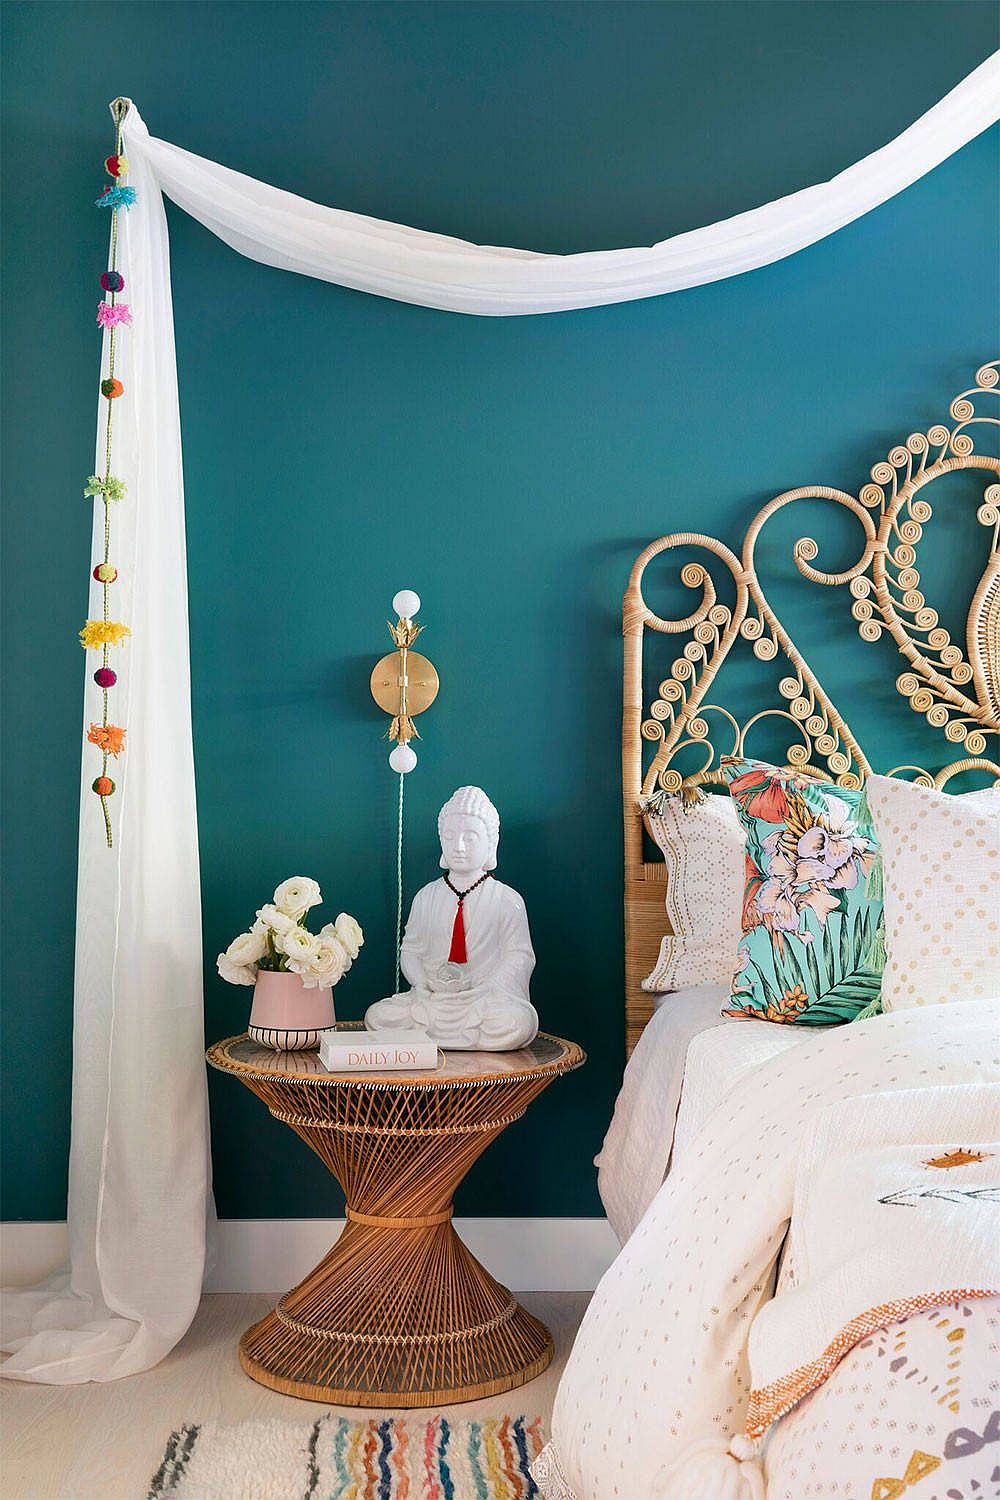 Modern bohemian bedroom with Asian influences and a relaxing color palette